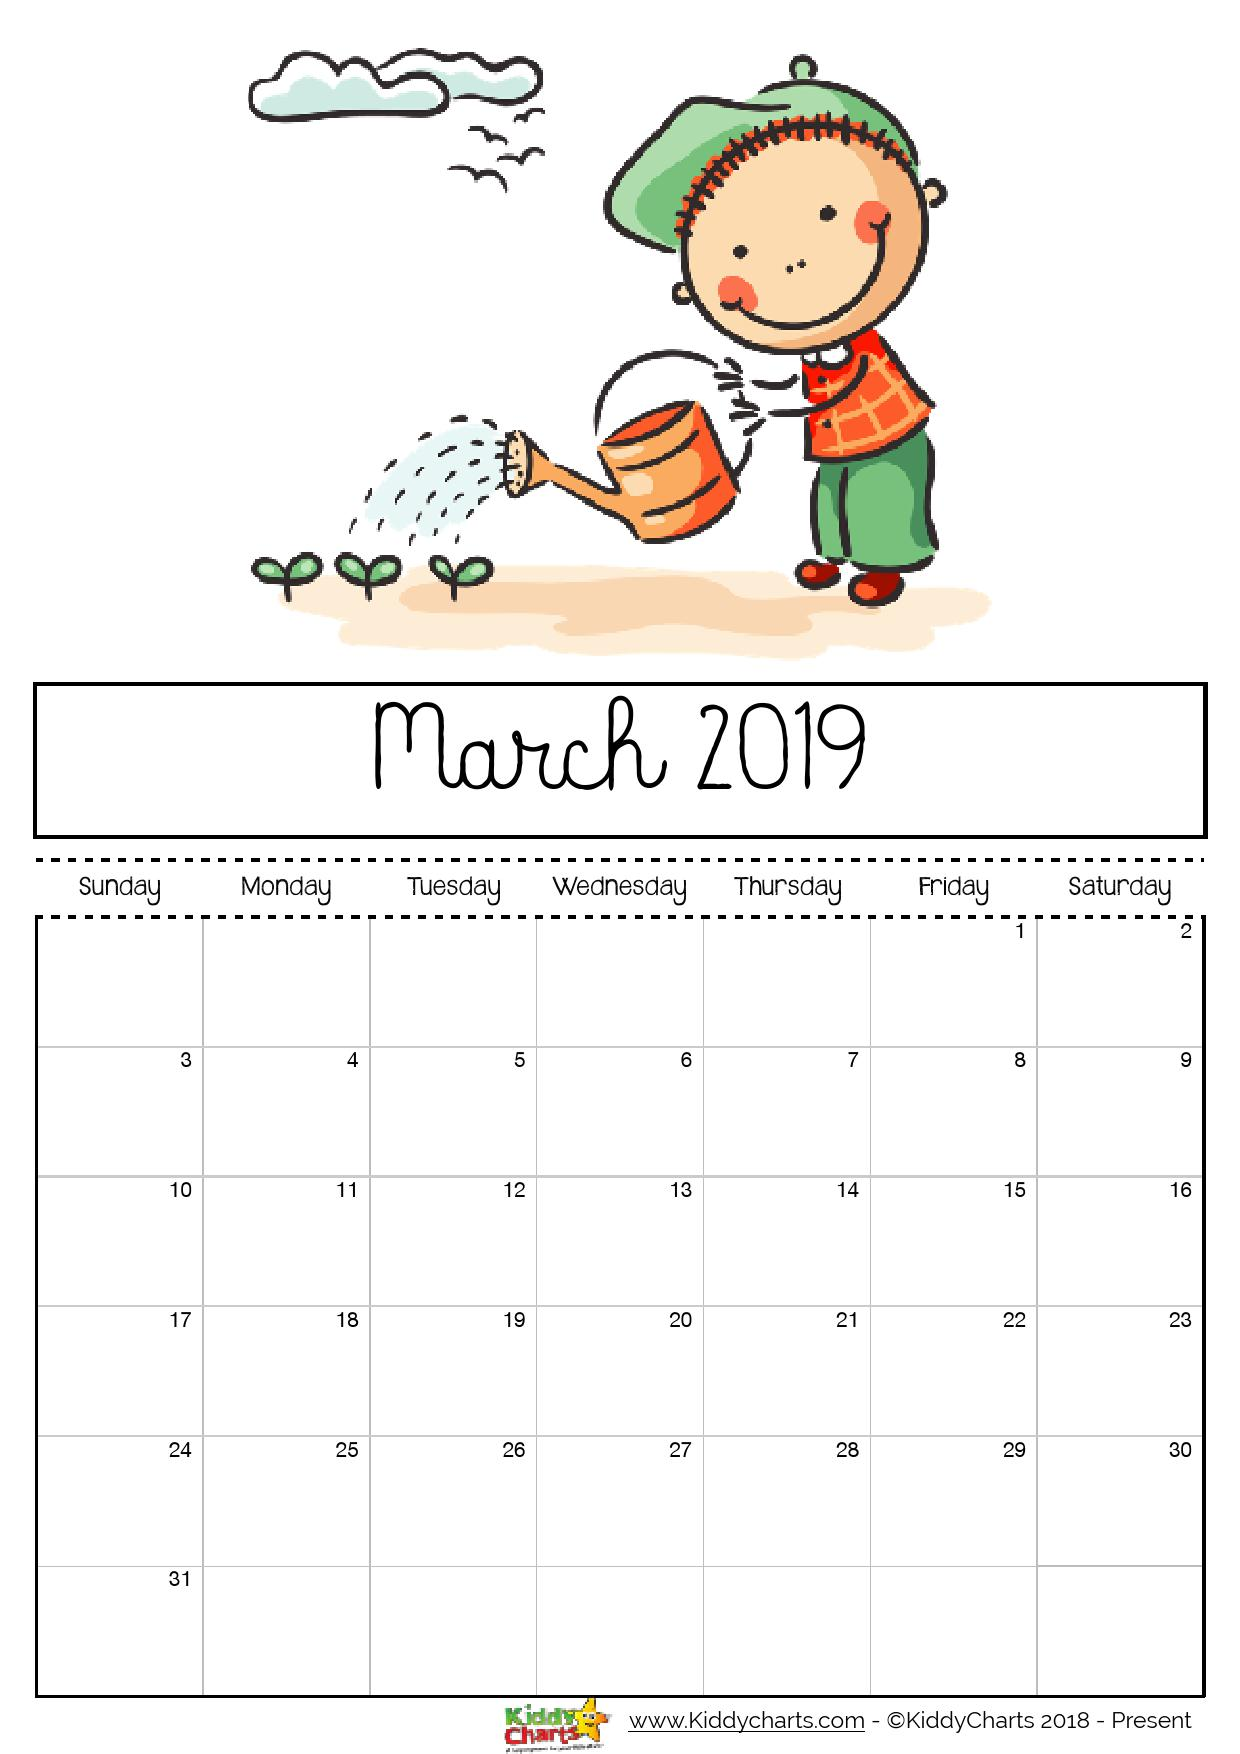 Girl watering her garden with a watering can. She can come and help me anyday! #printables #kidsprintables #2019calendar